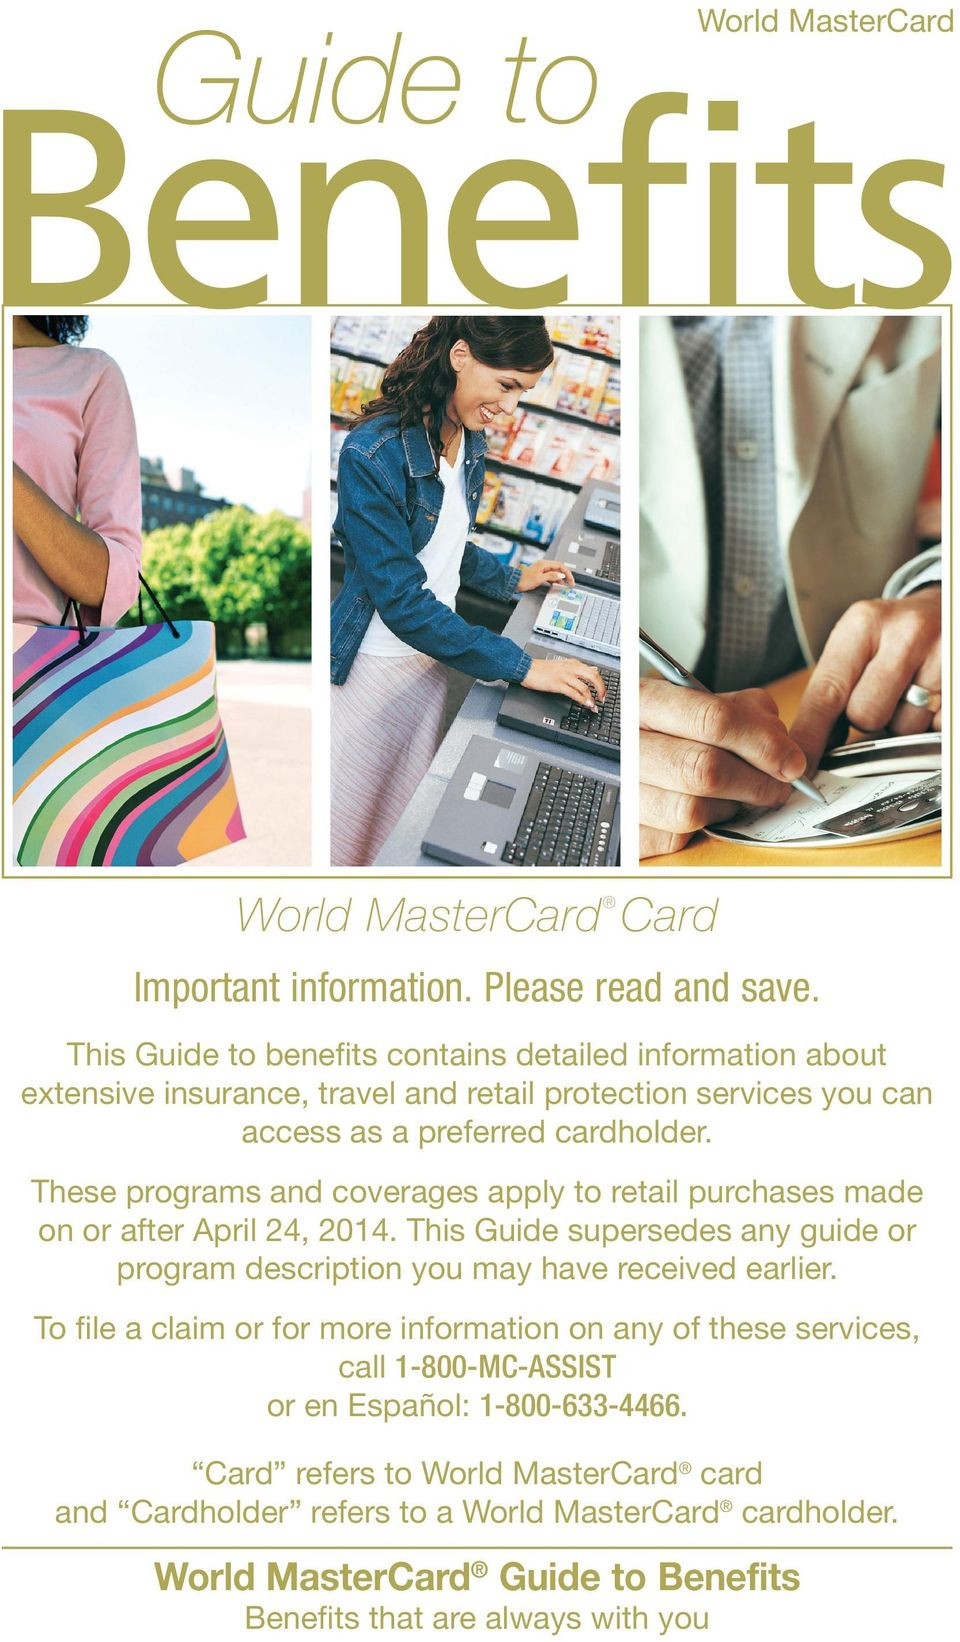 These programs and coverages apply to retail purchases made on or after April 24, 2014. This Guide supersedes any guide or program description you may have received earlier.